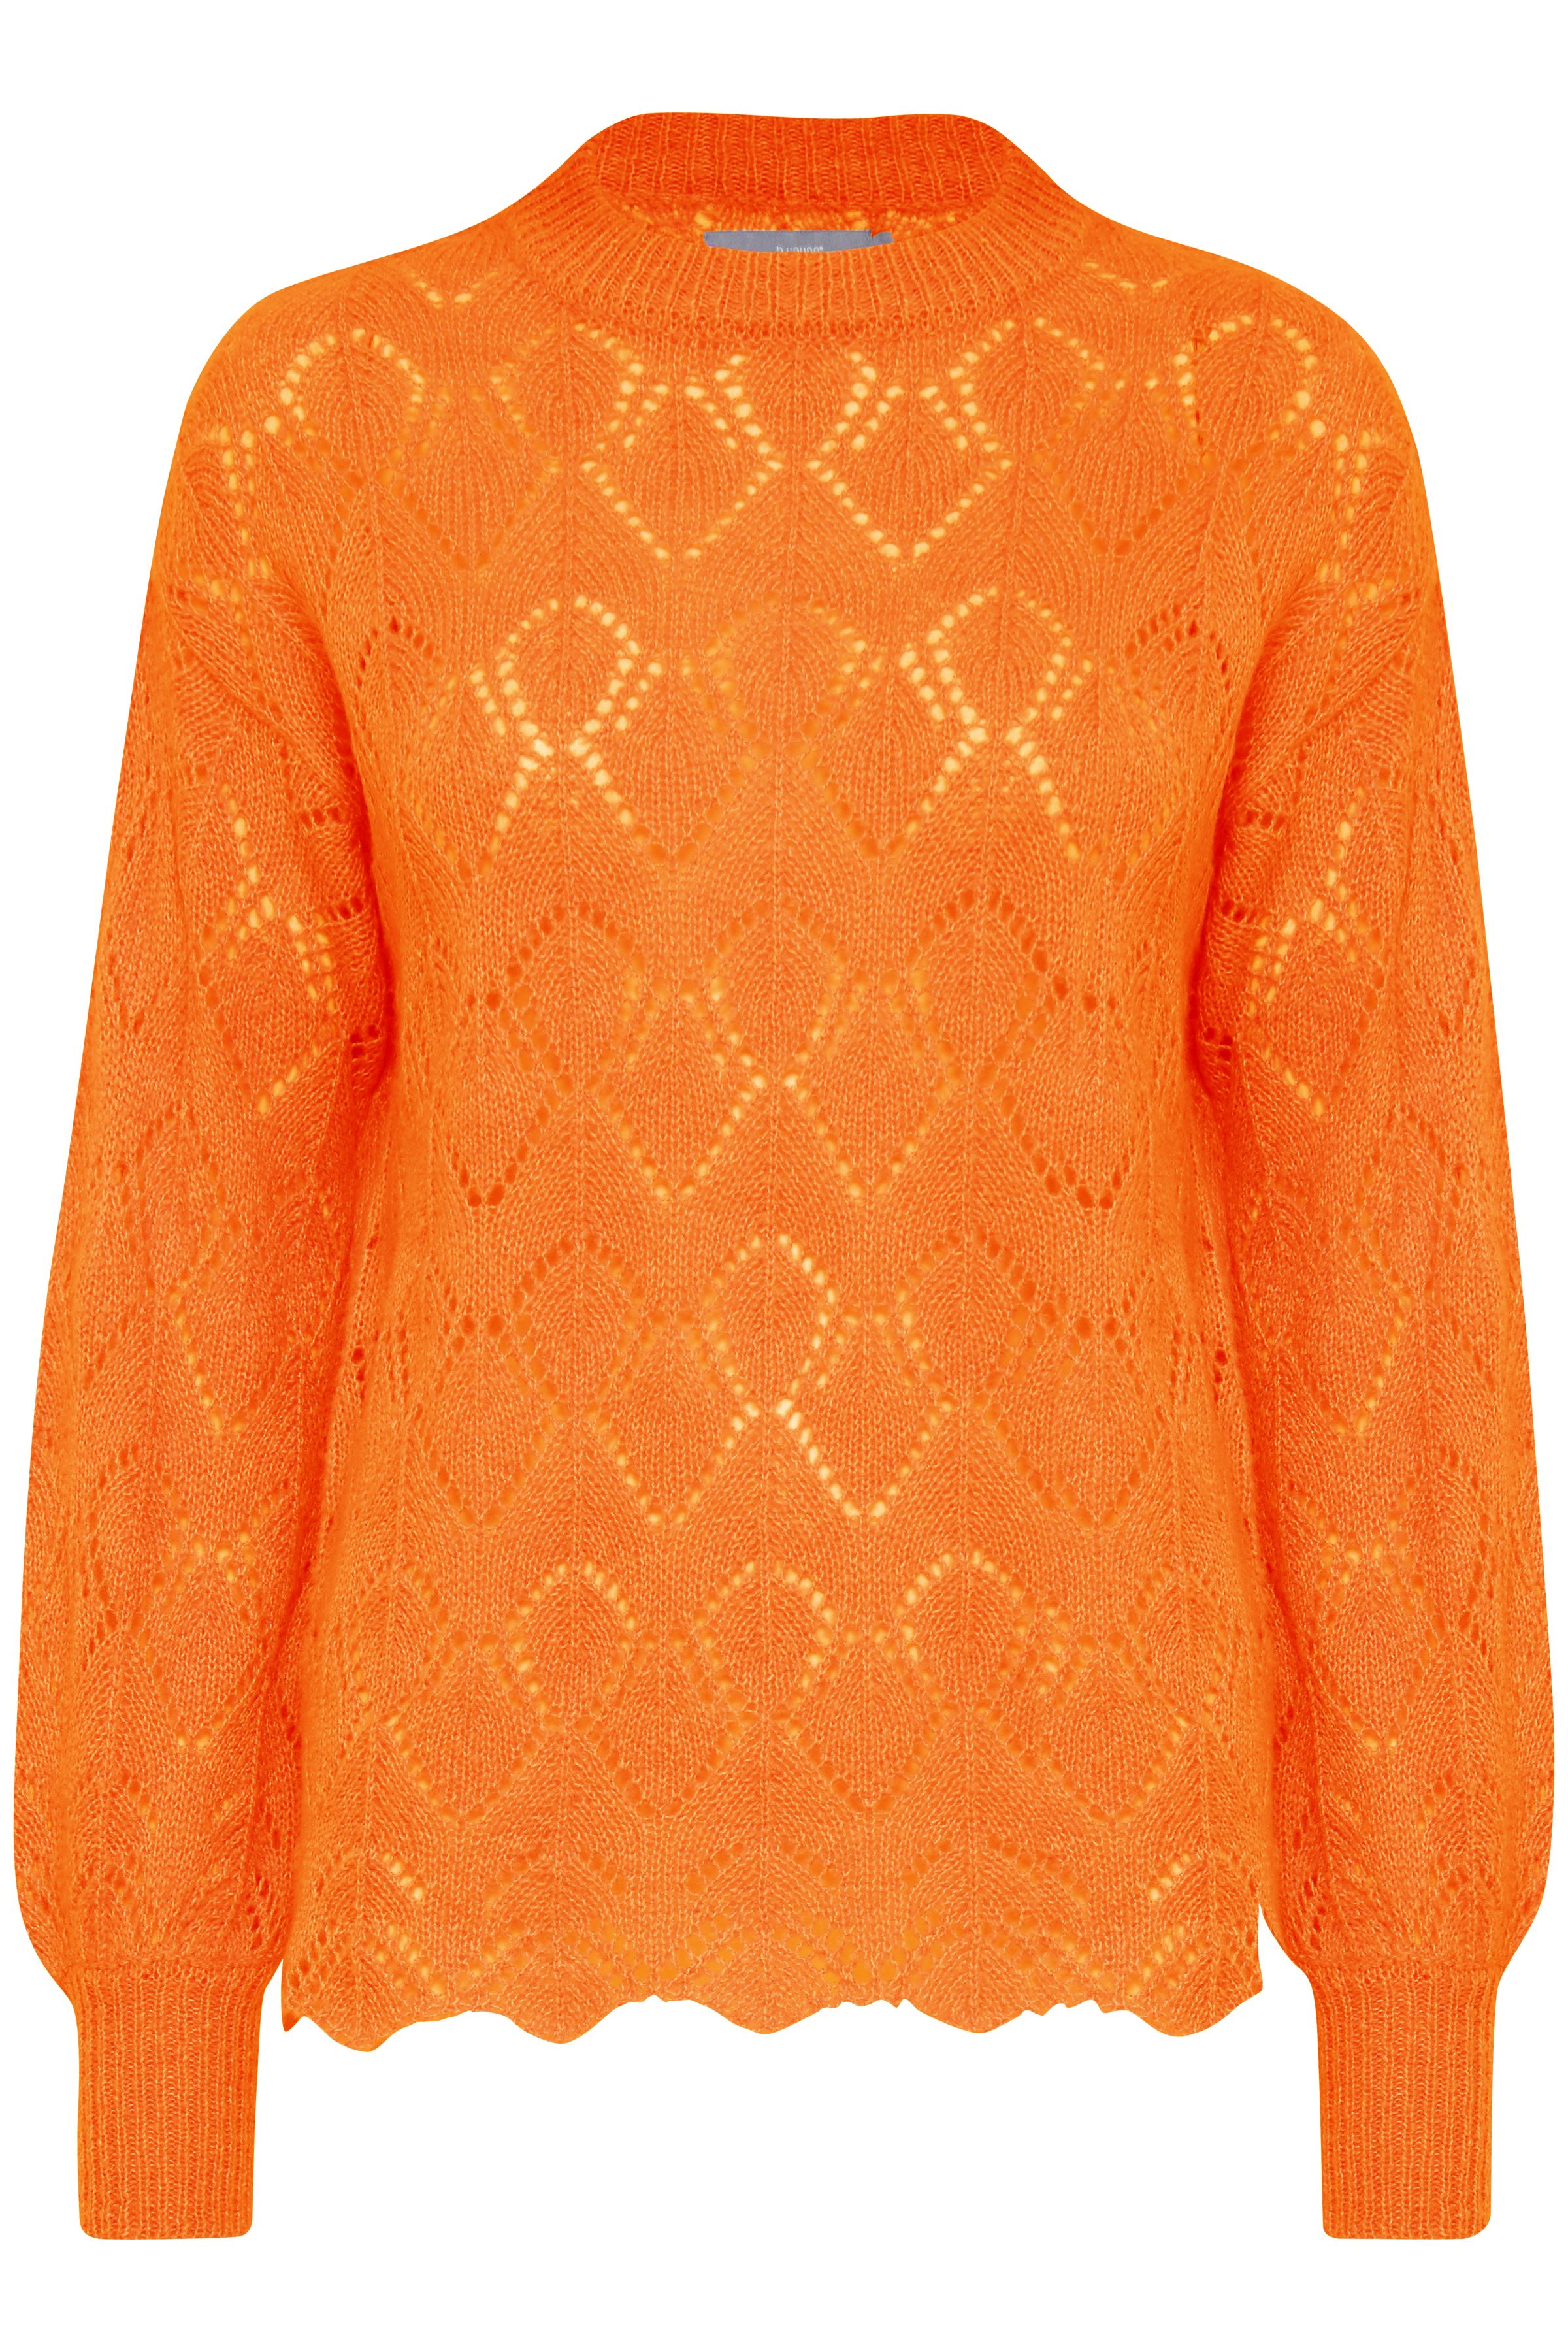 Sun Orange Mel. Knitted pullover from b.young – Buy Sun Orange Mel. Knitted pullover from size XS-XXL here